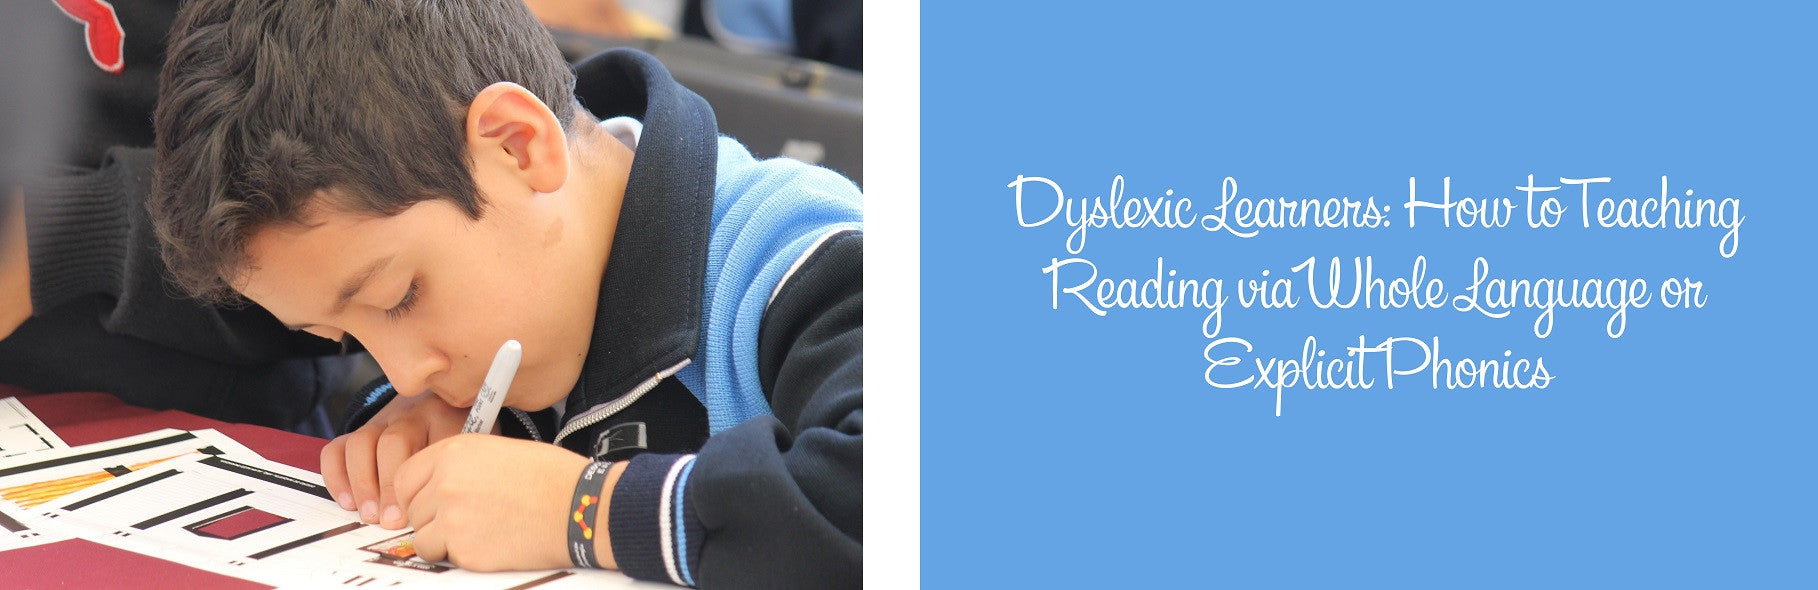 Dyslexic Learners: How to Teaching Reading via Whole Language or Explicit Phonics